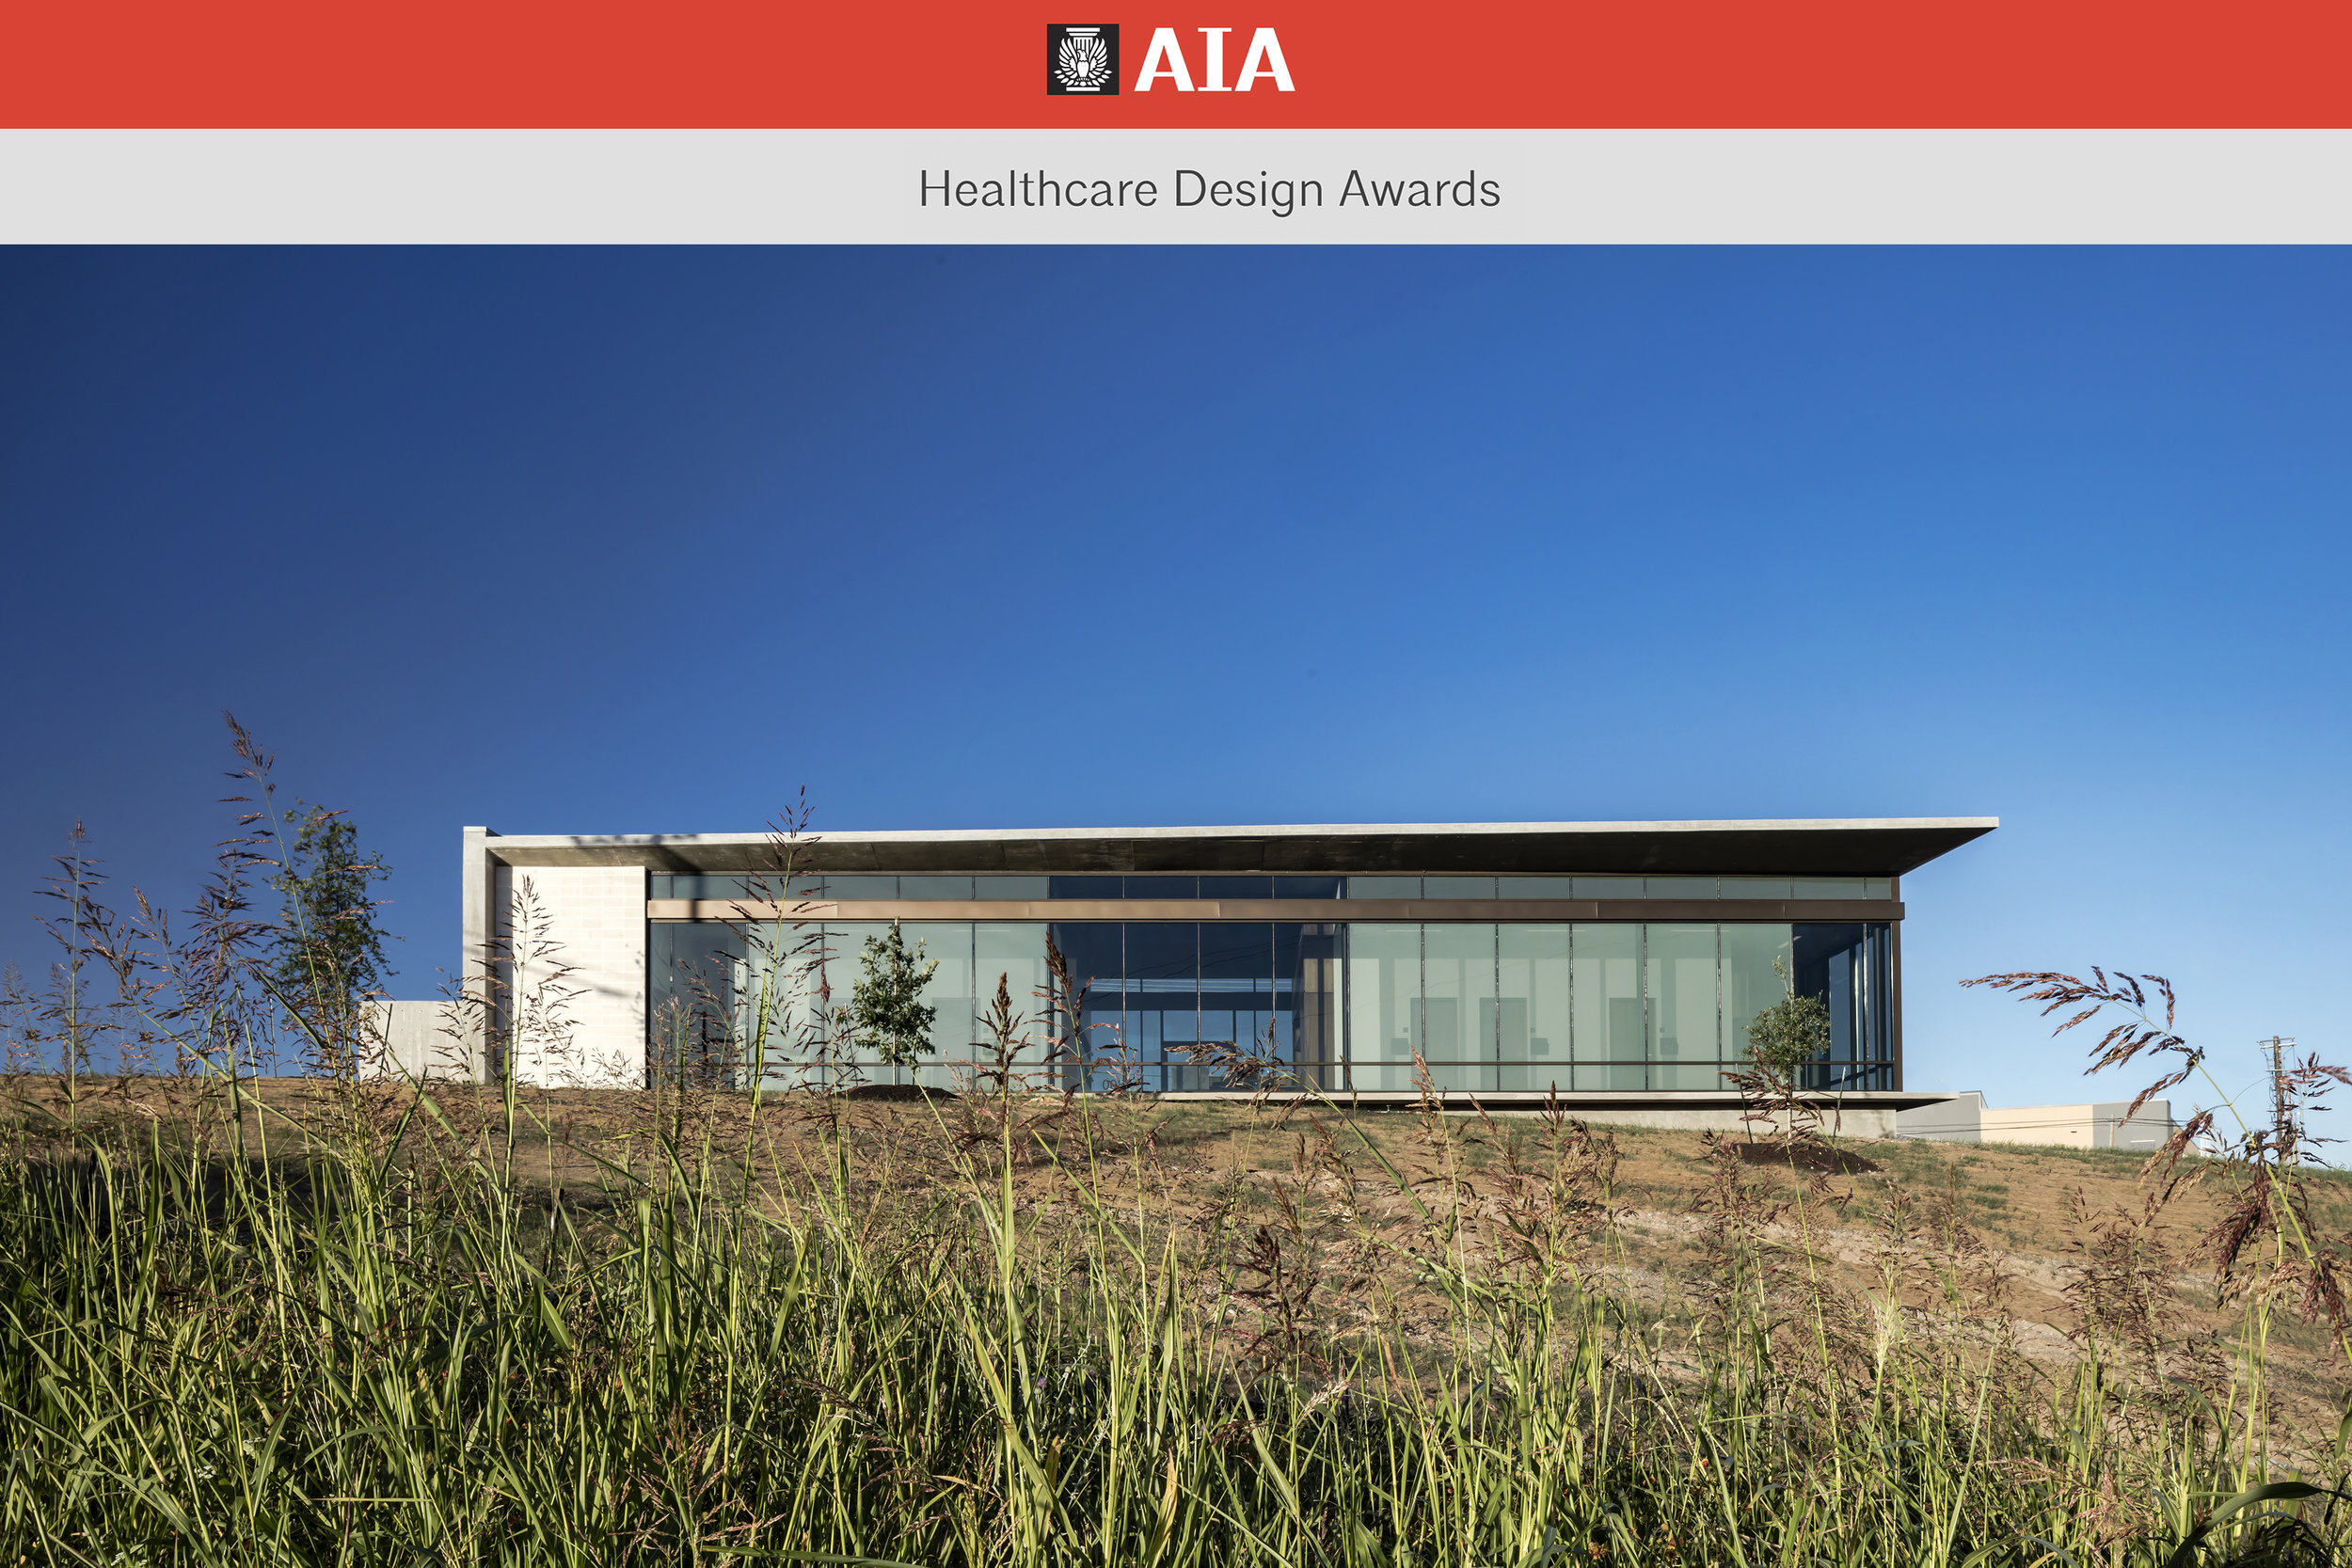 2019_0729 WDMF - AIA Healthcare Design Awards.jpg